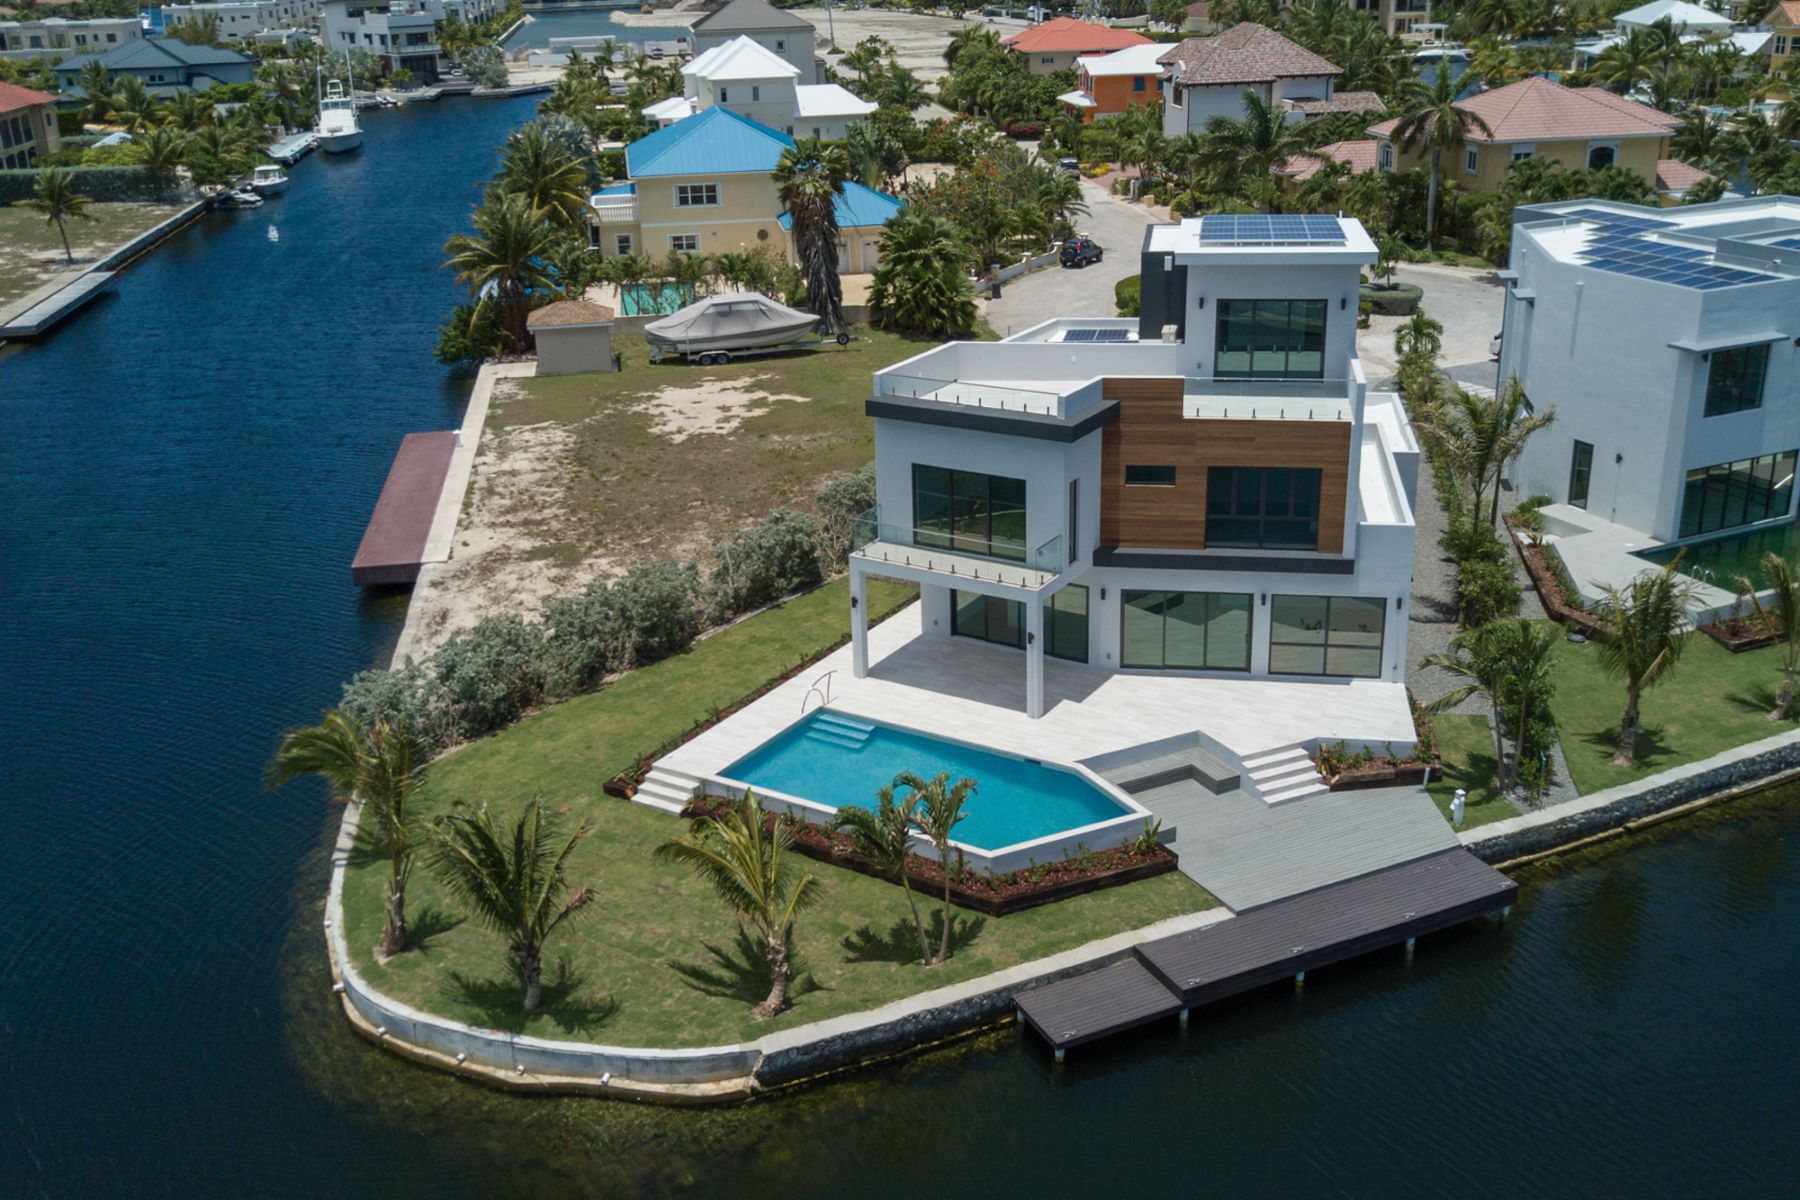 Single Family Home for Sale at HQ Contemporary Crystal Harbour Home Crystal Harbour, Grand Cayman, Cayman Islands